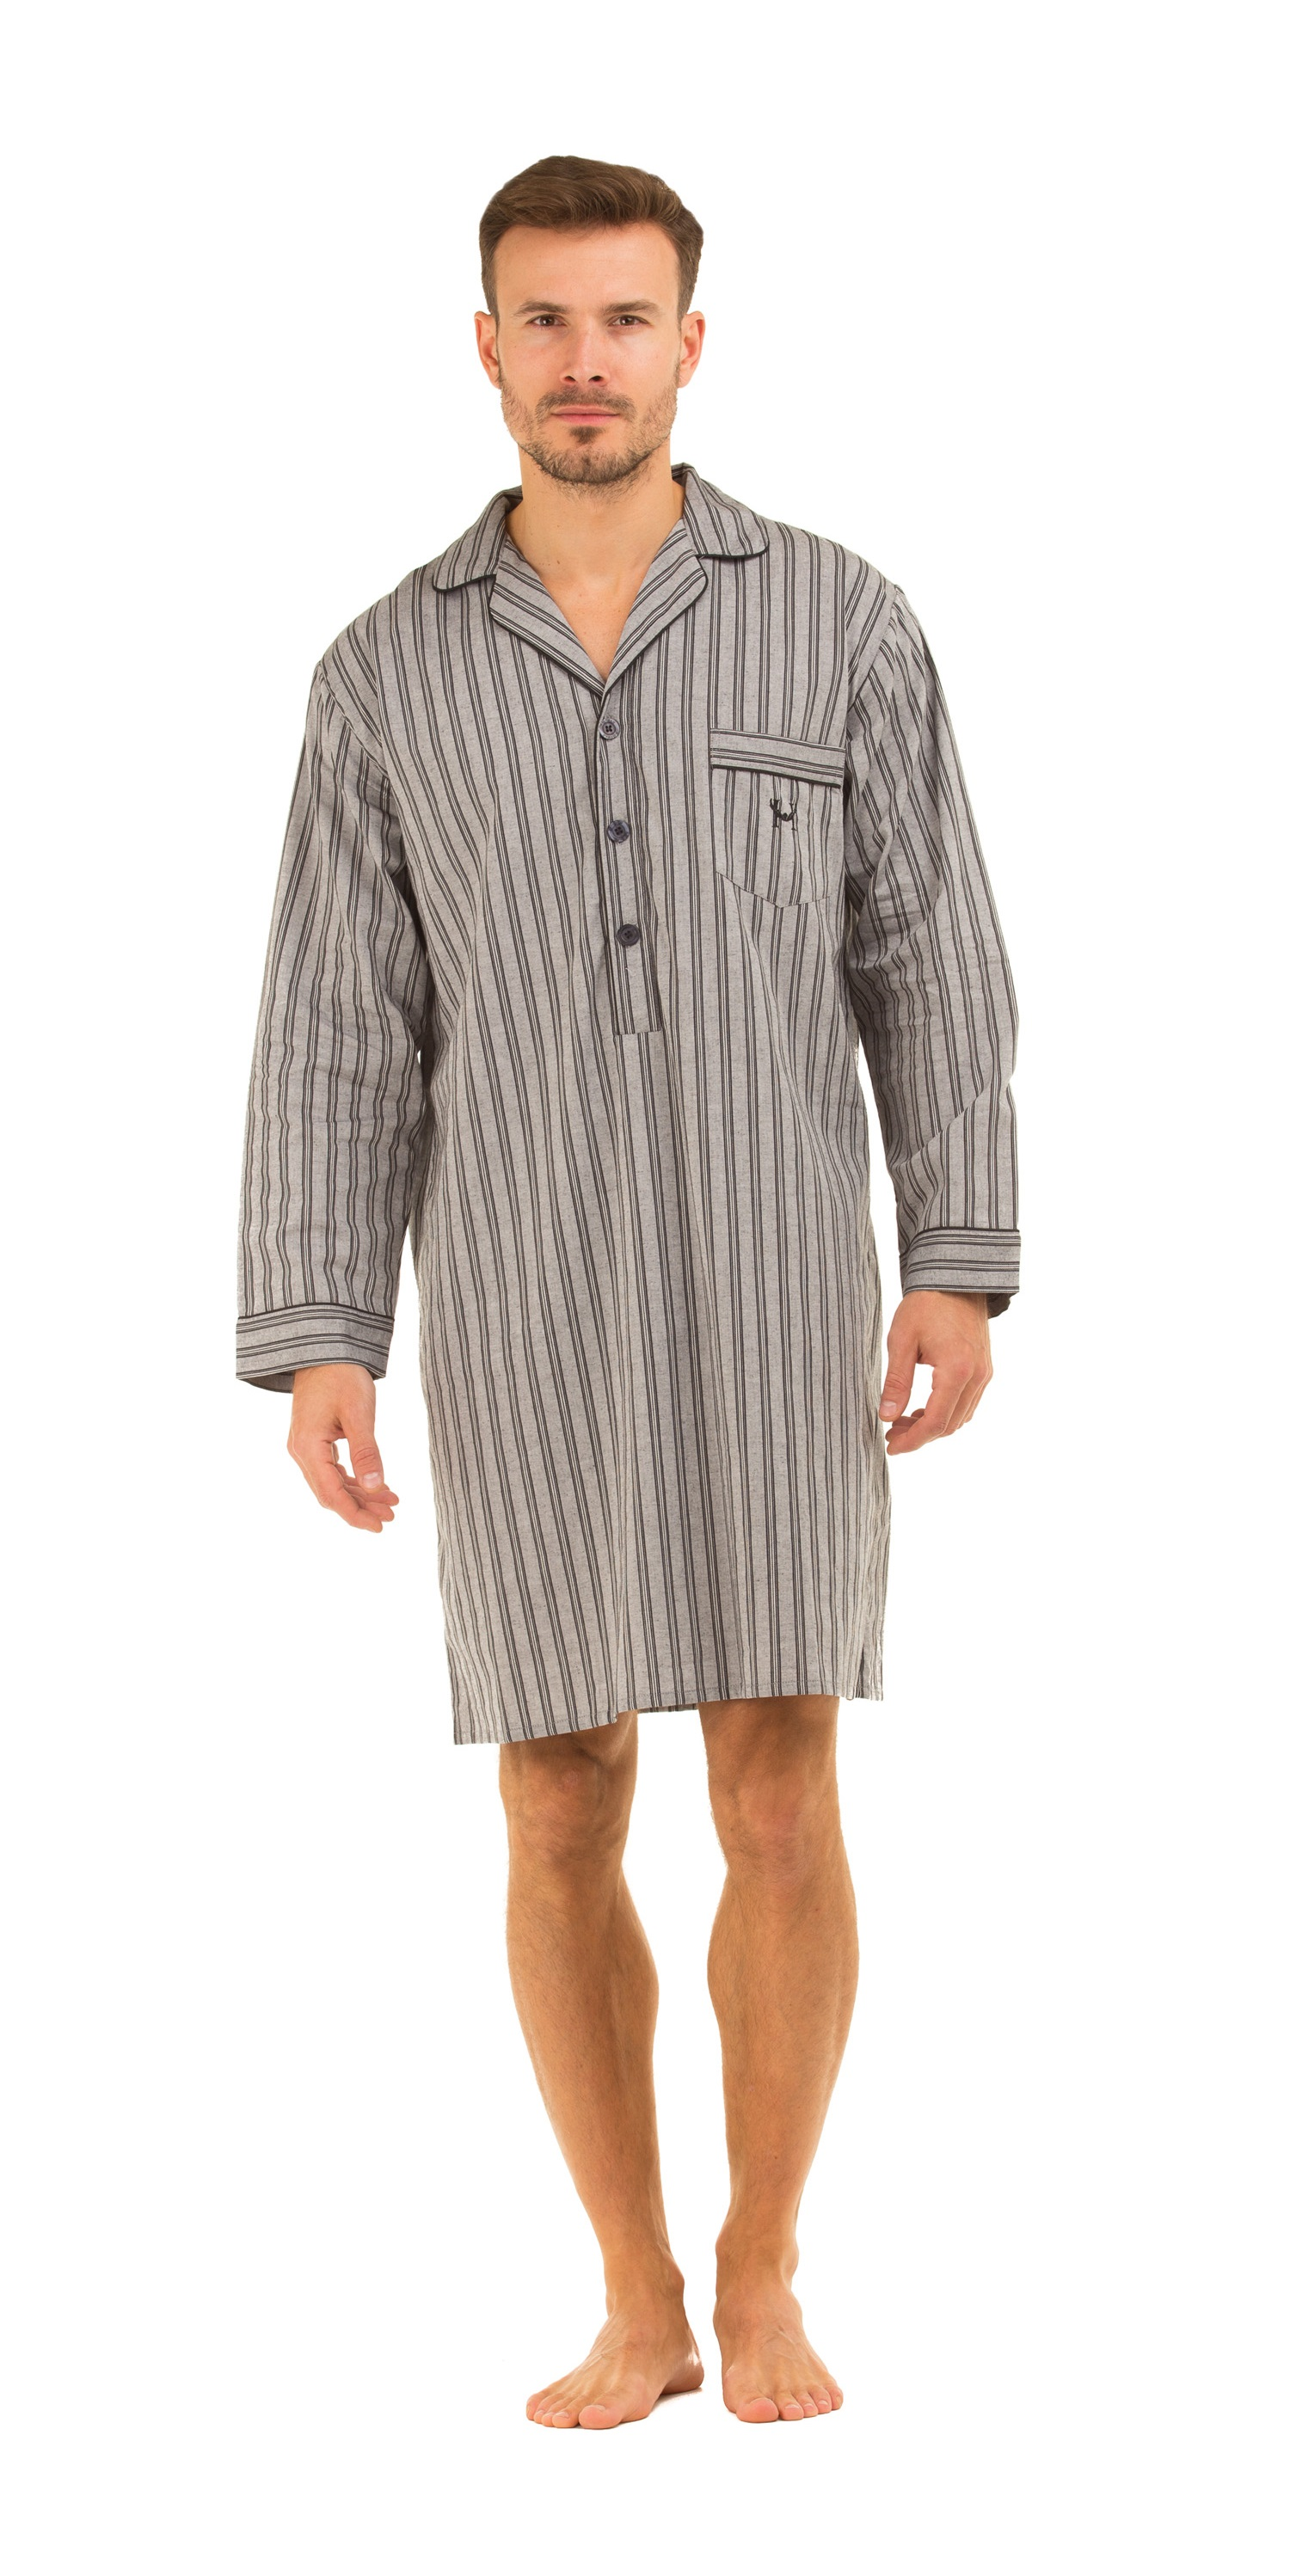 Men's Robes. Kick back and relax in men's pajamas from Kohl's. Whether it's loungewear or men's robes you're looking for, we have it all! You can find individual sleepwear options, like men's pajama pants at Kohl's. If you're in search of a complete bedtime look, check out our line of men's pajama tubidyindir.ga for a festive look for the holidays, shop Kohl's for men's Christmas pajamas and.